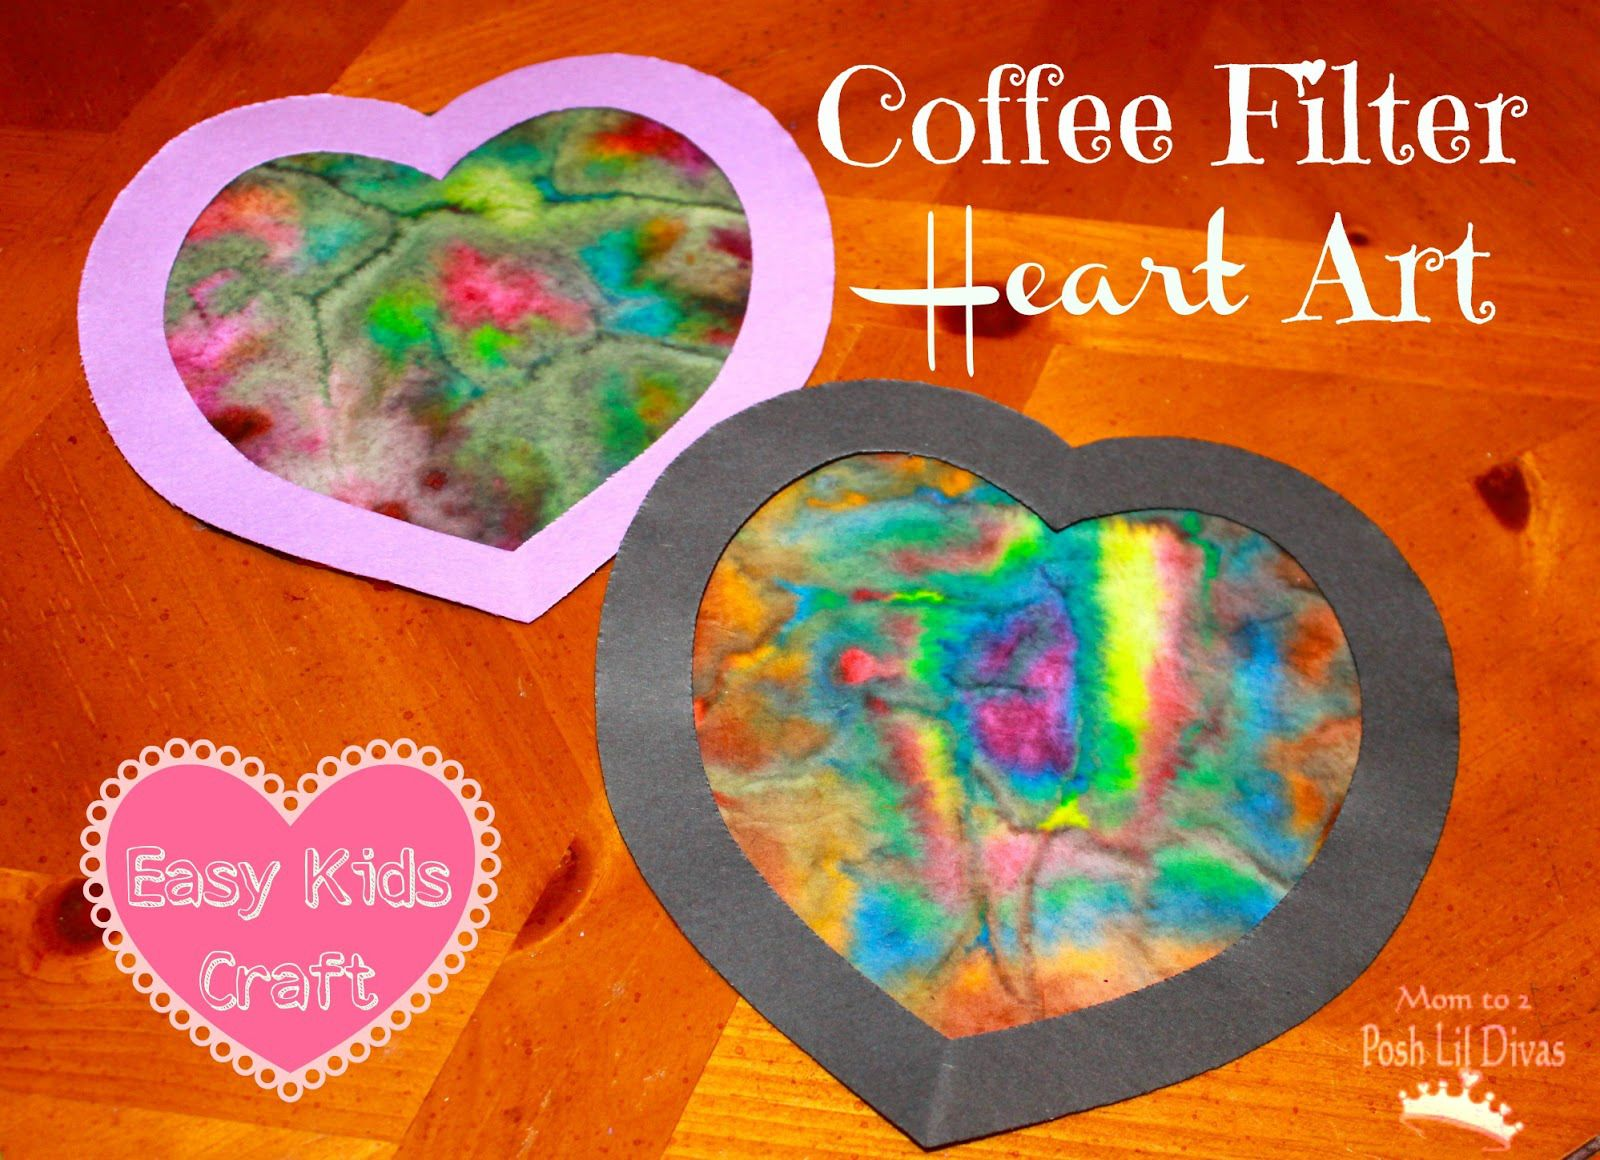 Coffee Filter Valentines Crafts For 3rd Grade Kids Craft Coffee Filter Heart Art For Valentines